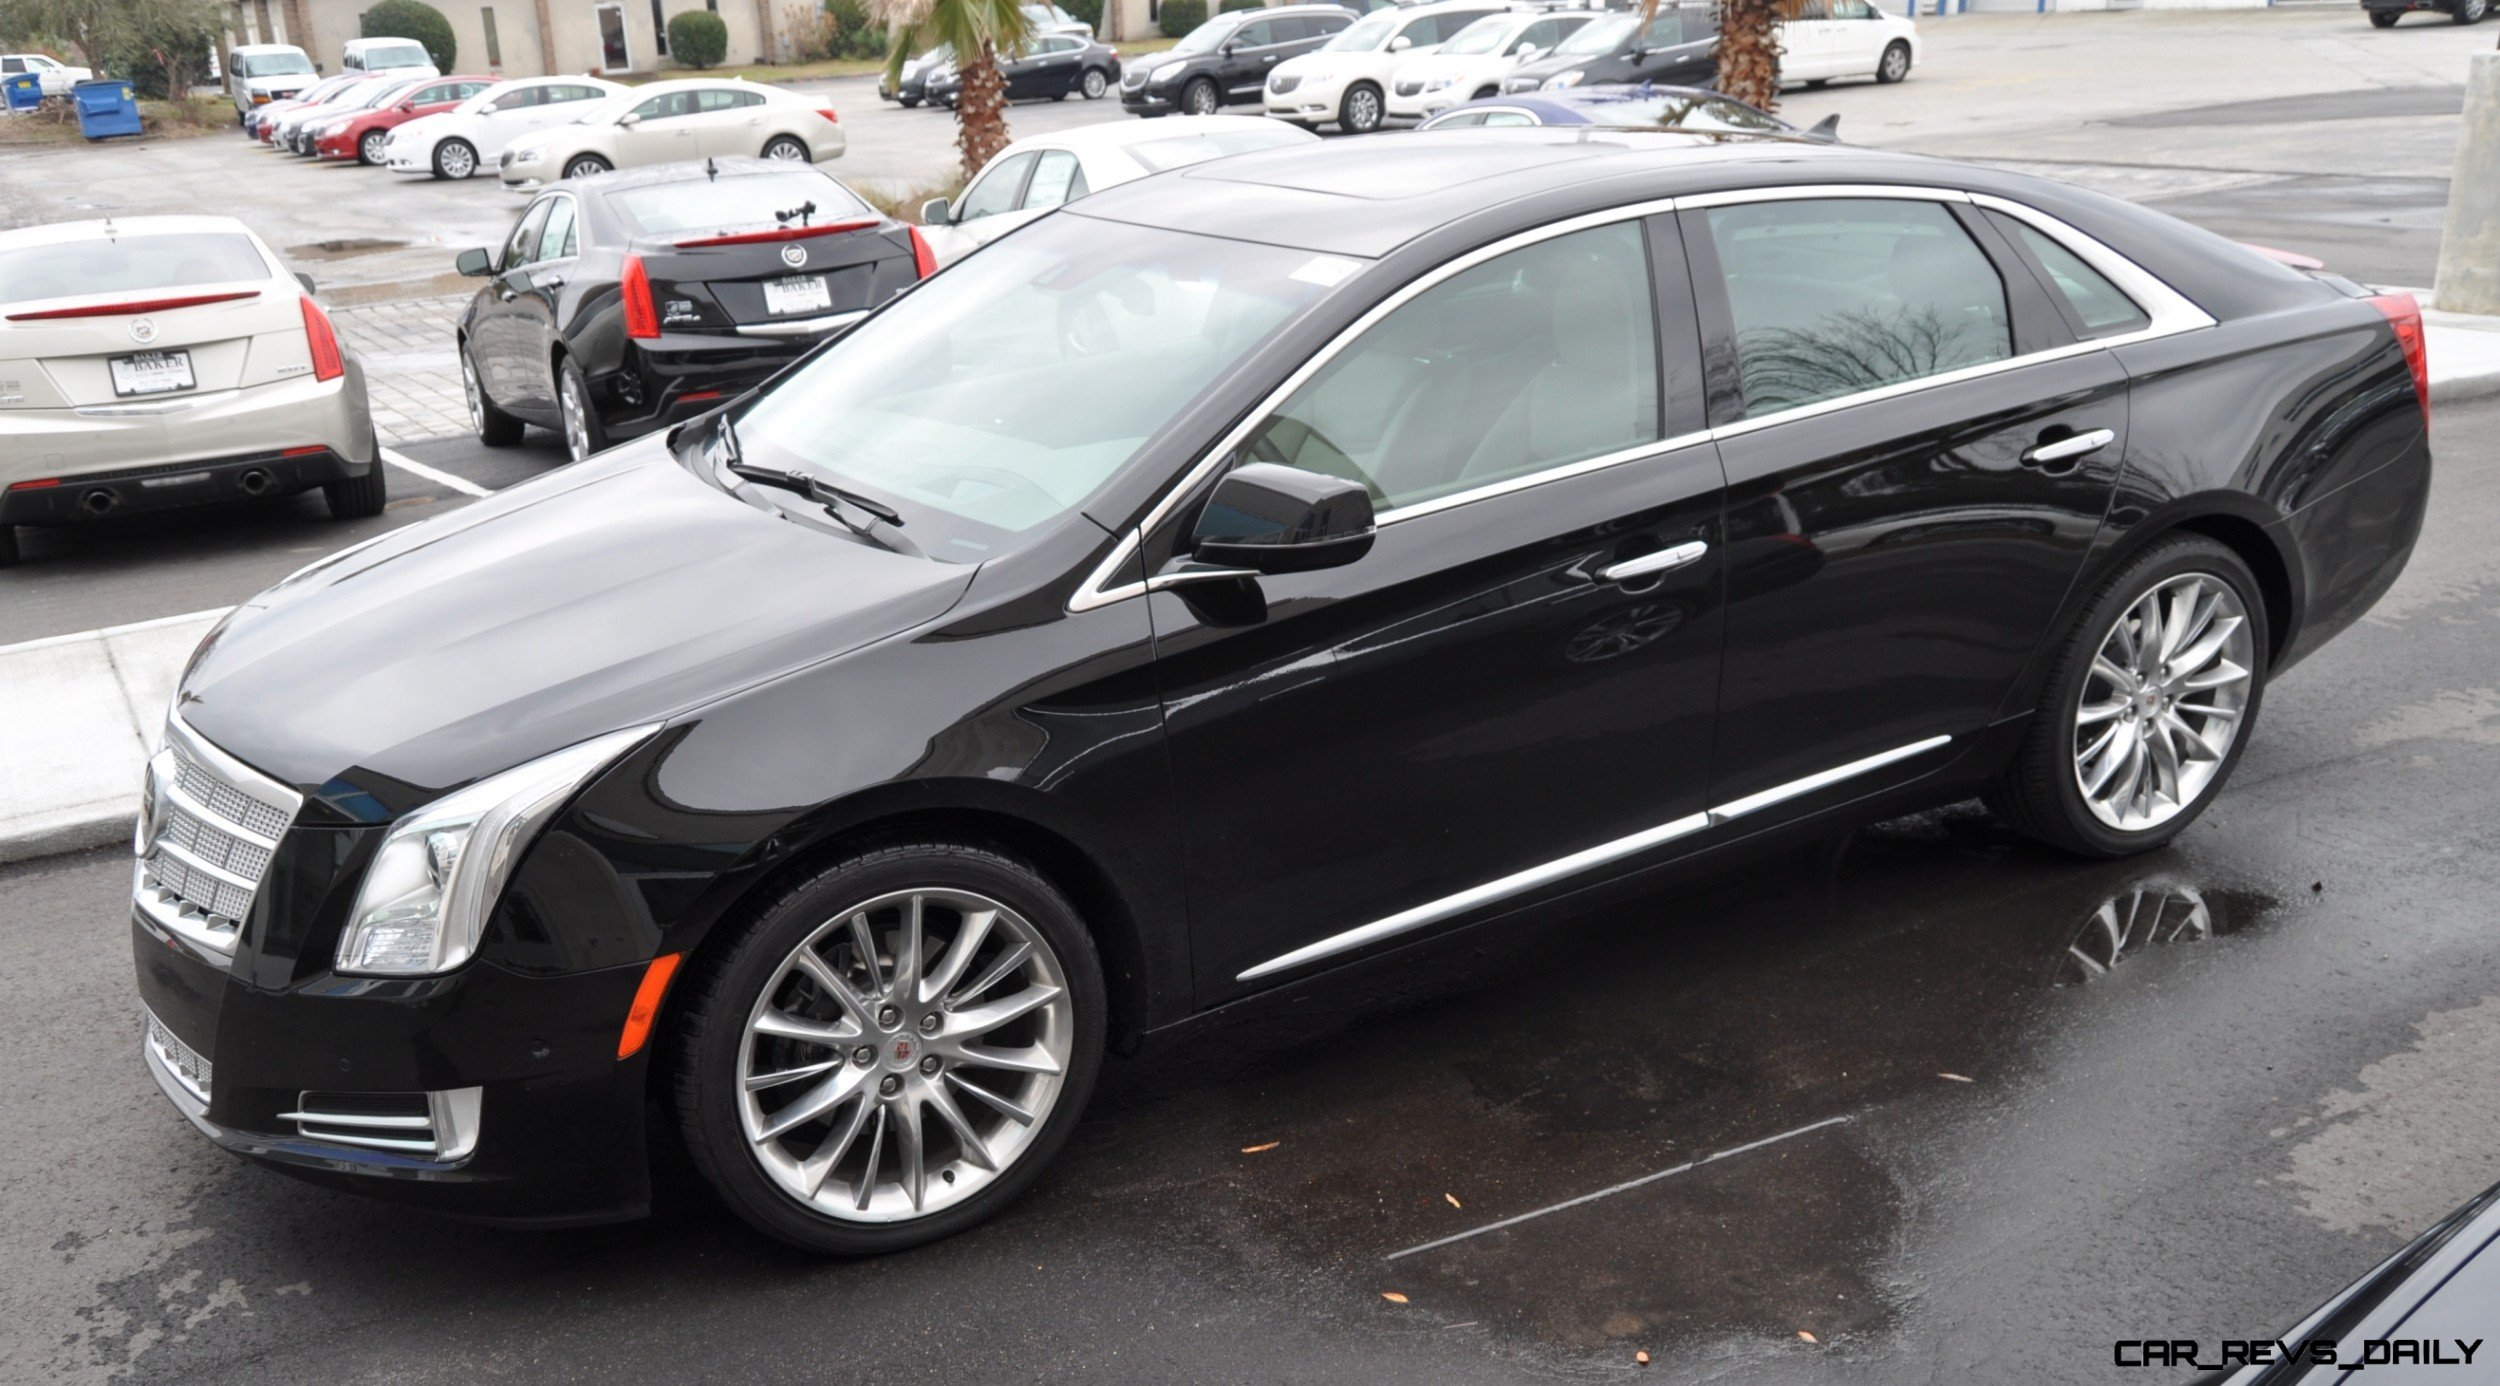 2014 cadillac xts4 platinum vsport first drive video and photos 16